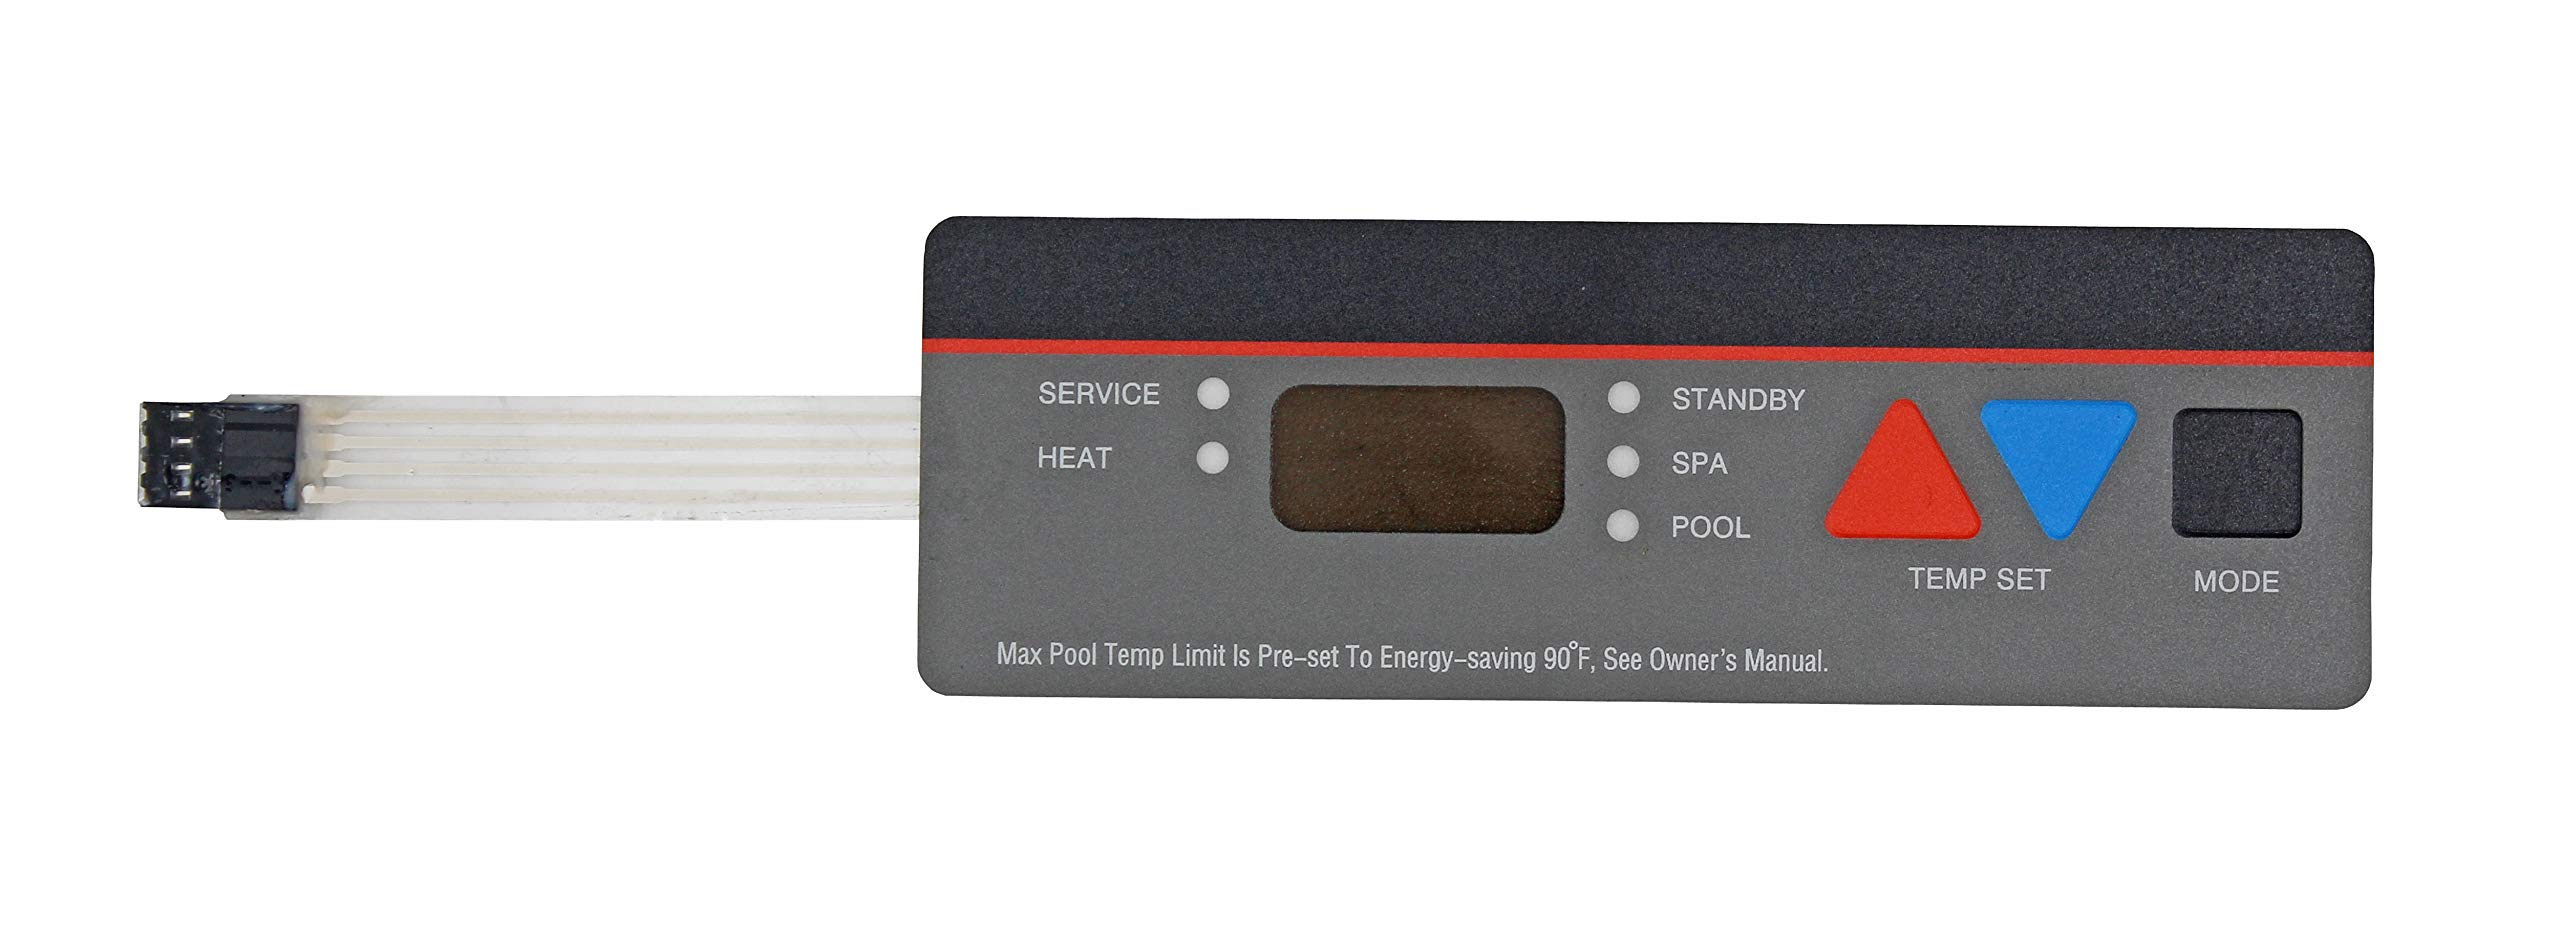 State Warehouse Pool Heater Replacement Control Panel Keypad Membrane Switch Replace for Hayward Compatible All H-Series Pool Heaters;Fits H100ID1 H150 H150FDN H150FDP H200FDN Series by State Warehouse